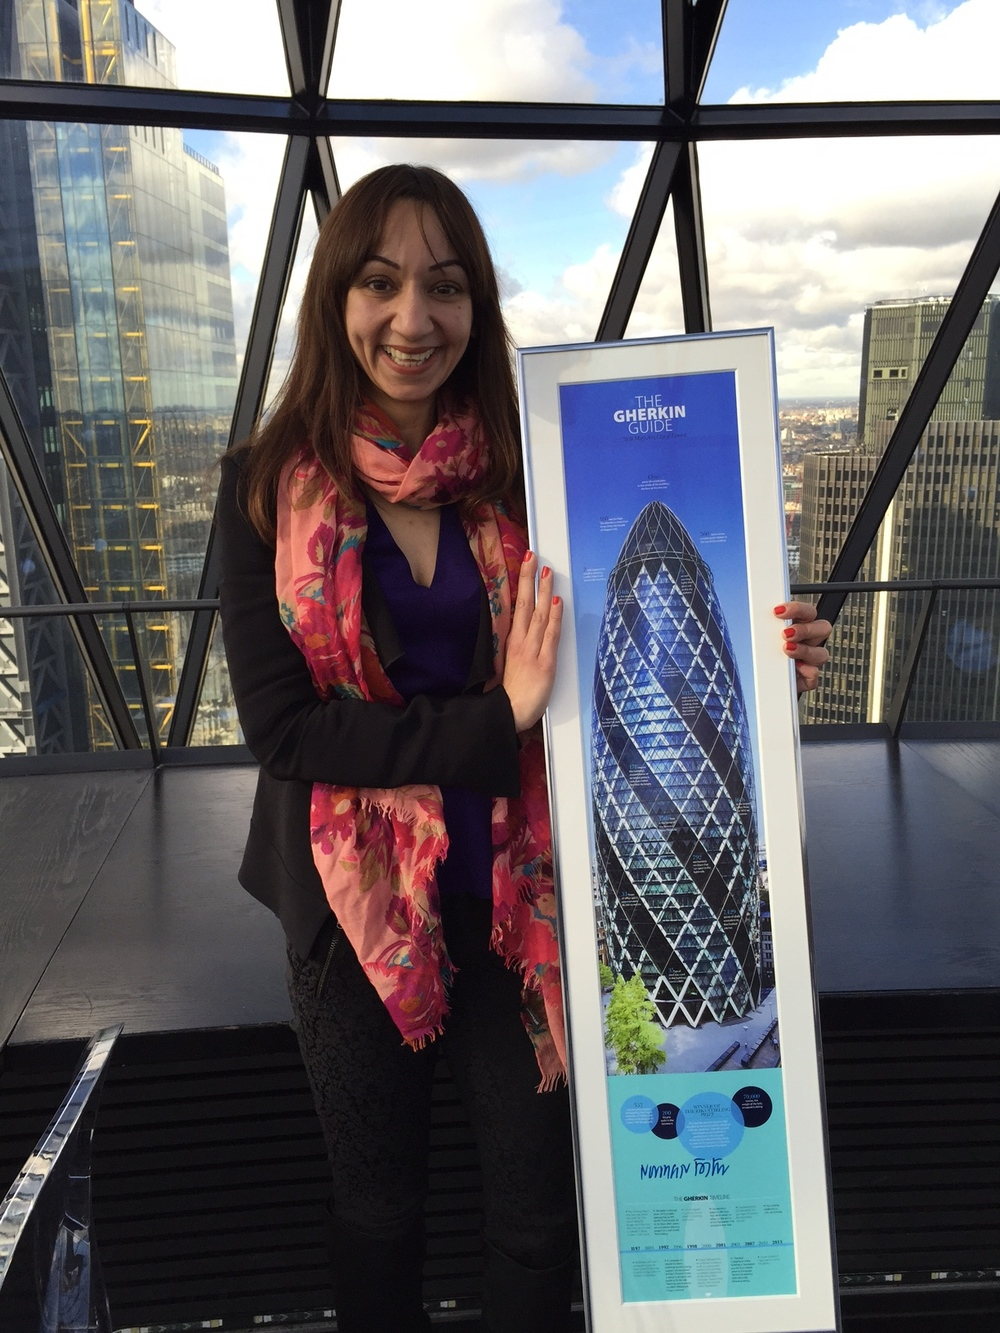 Barinder, the 2014 NSPCC Gherkin Challenge top individual fundraiser receiving her signed print